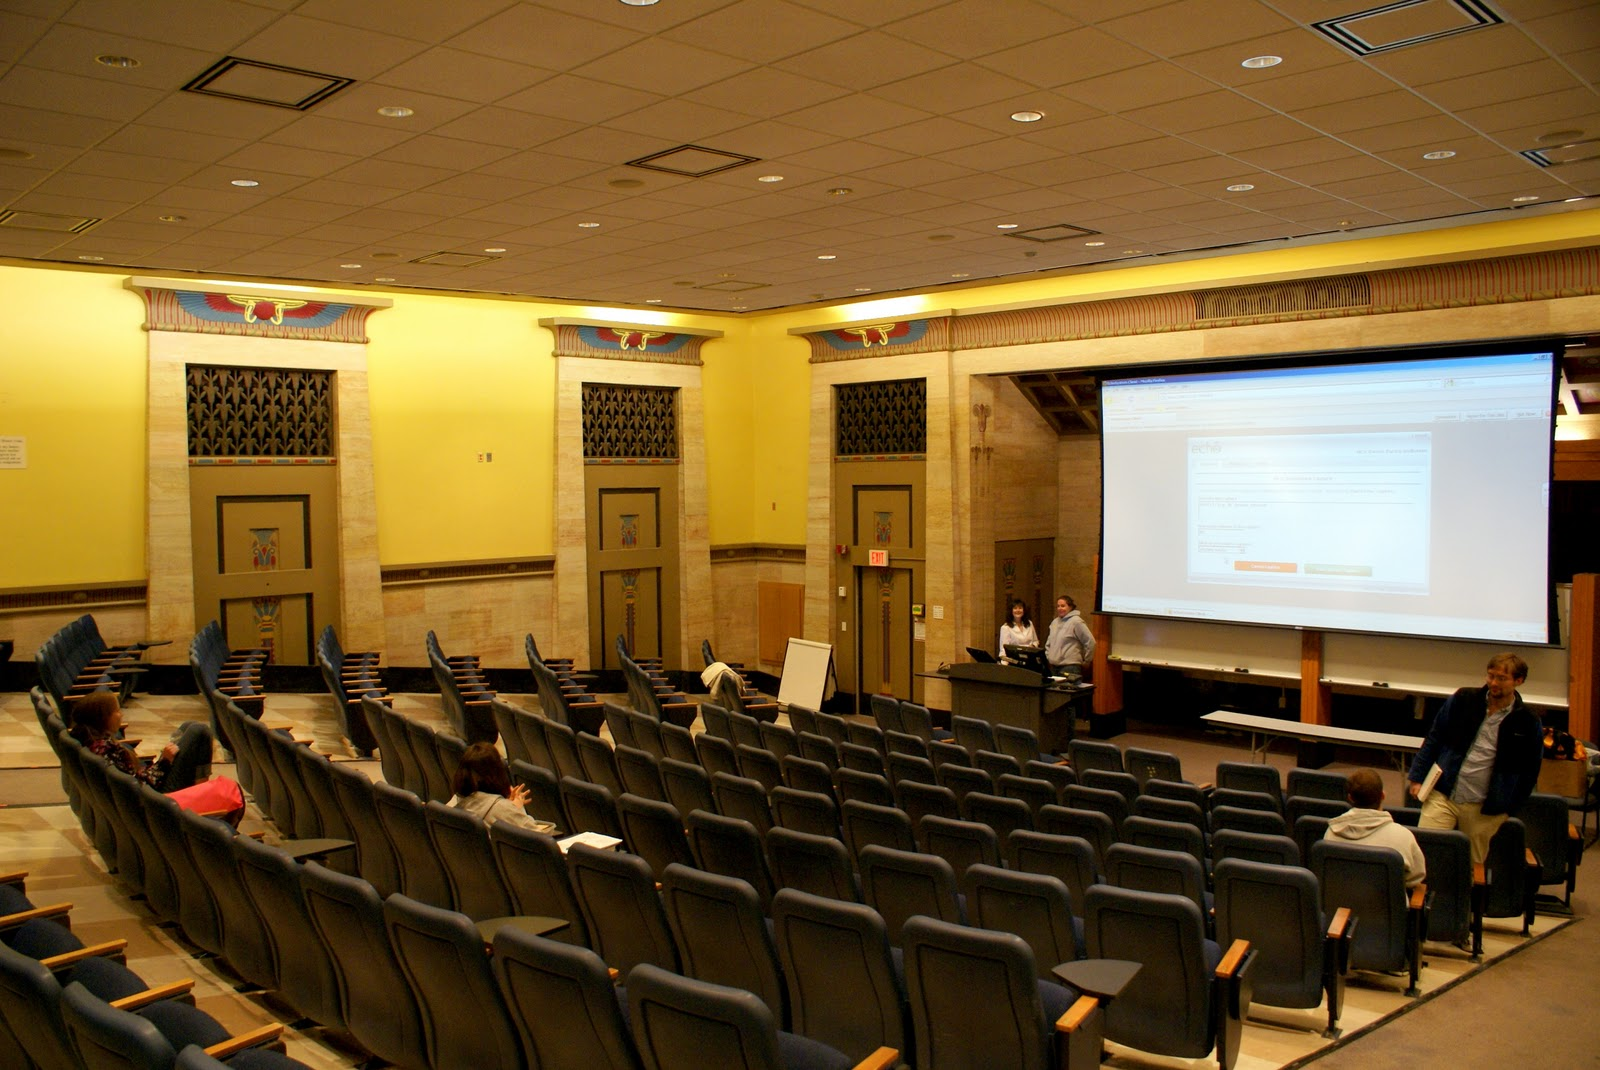 One of the building's classrooms. Courtesy of VCU